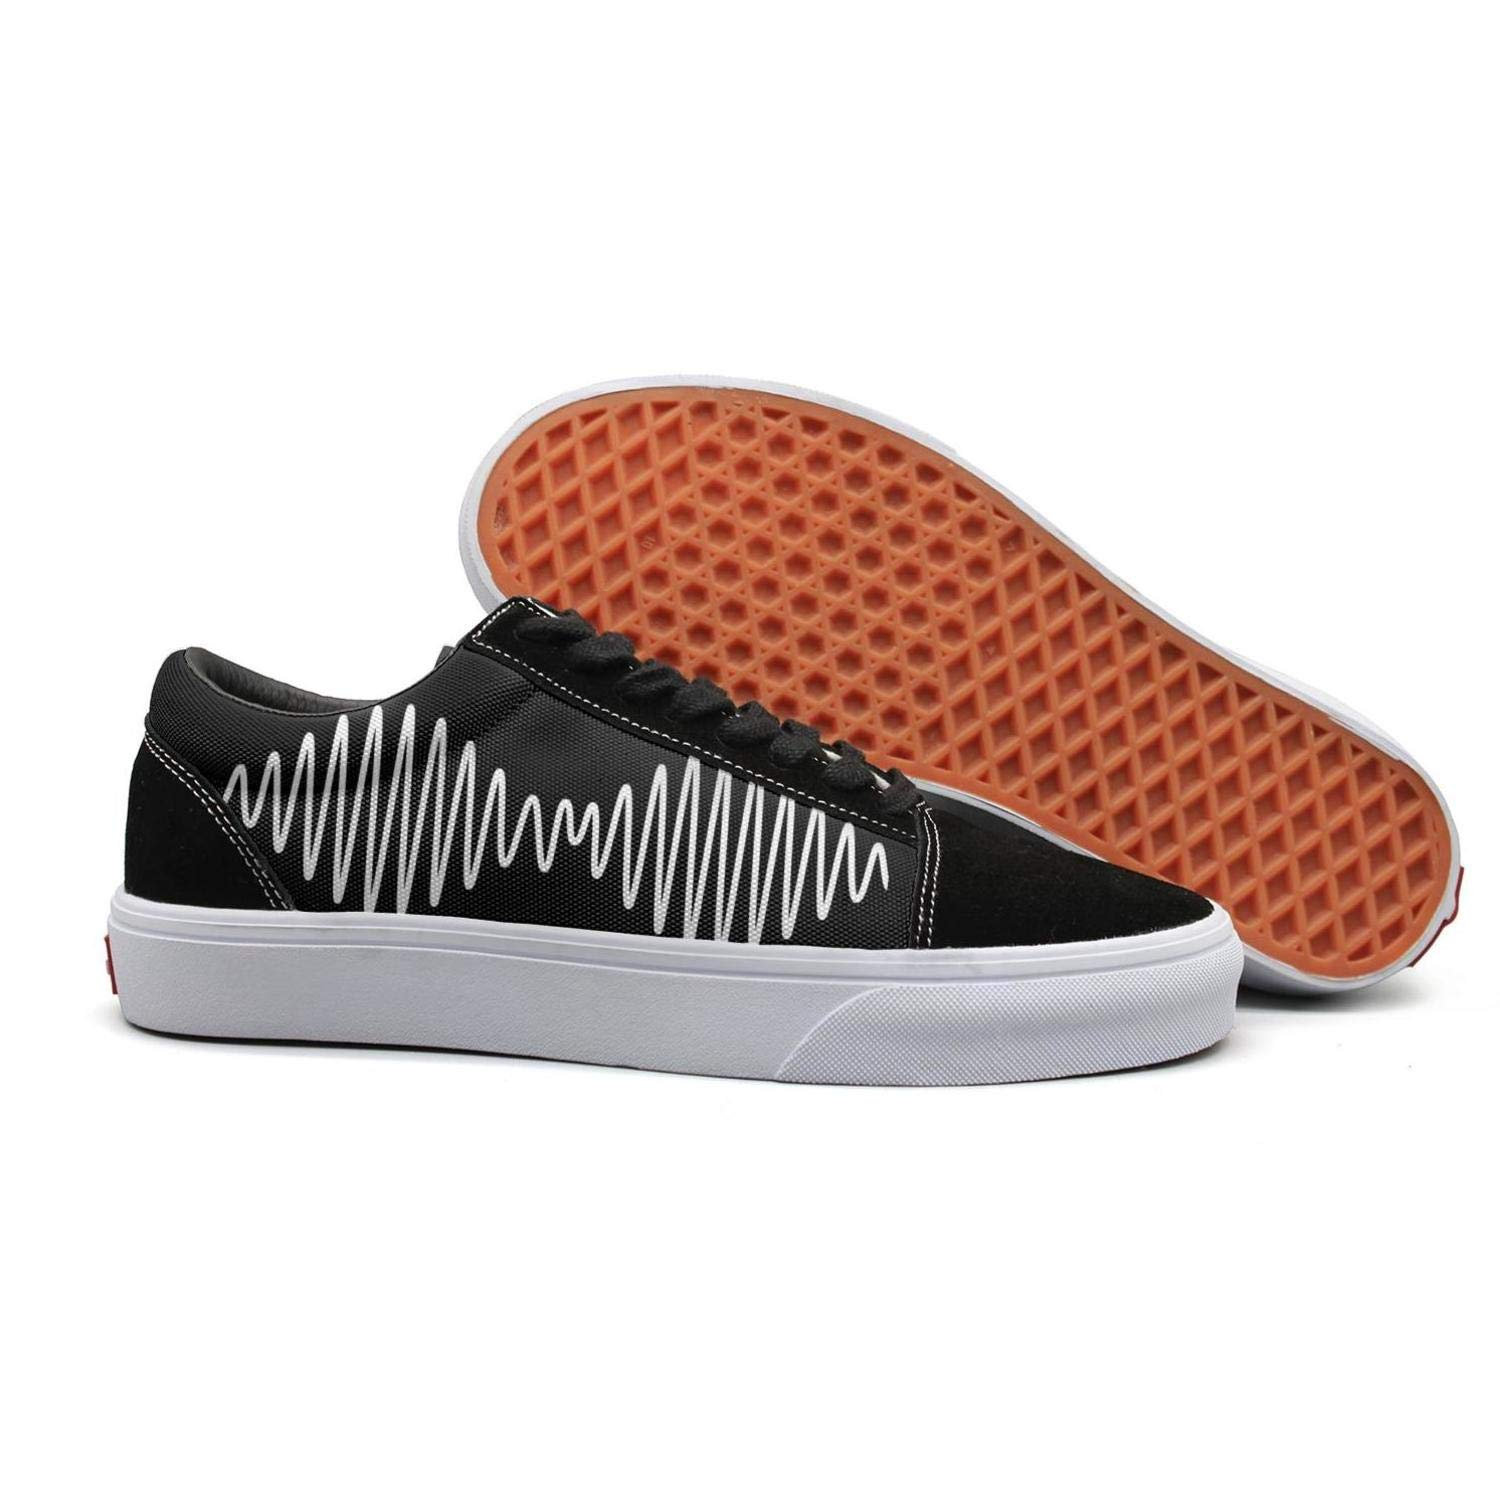 Skate Sneaker for Mens Flat Budge Leather Lazy Shoe Mens Arctic-Discography-Monkeys